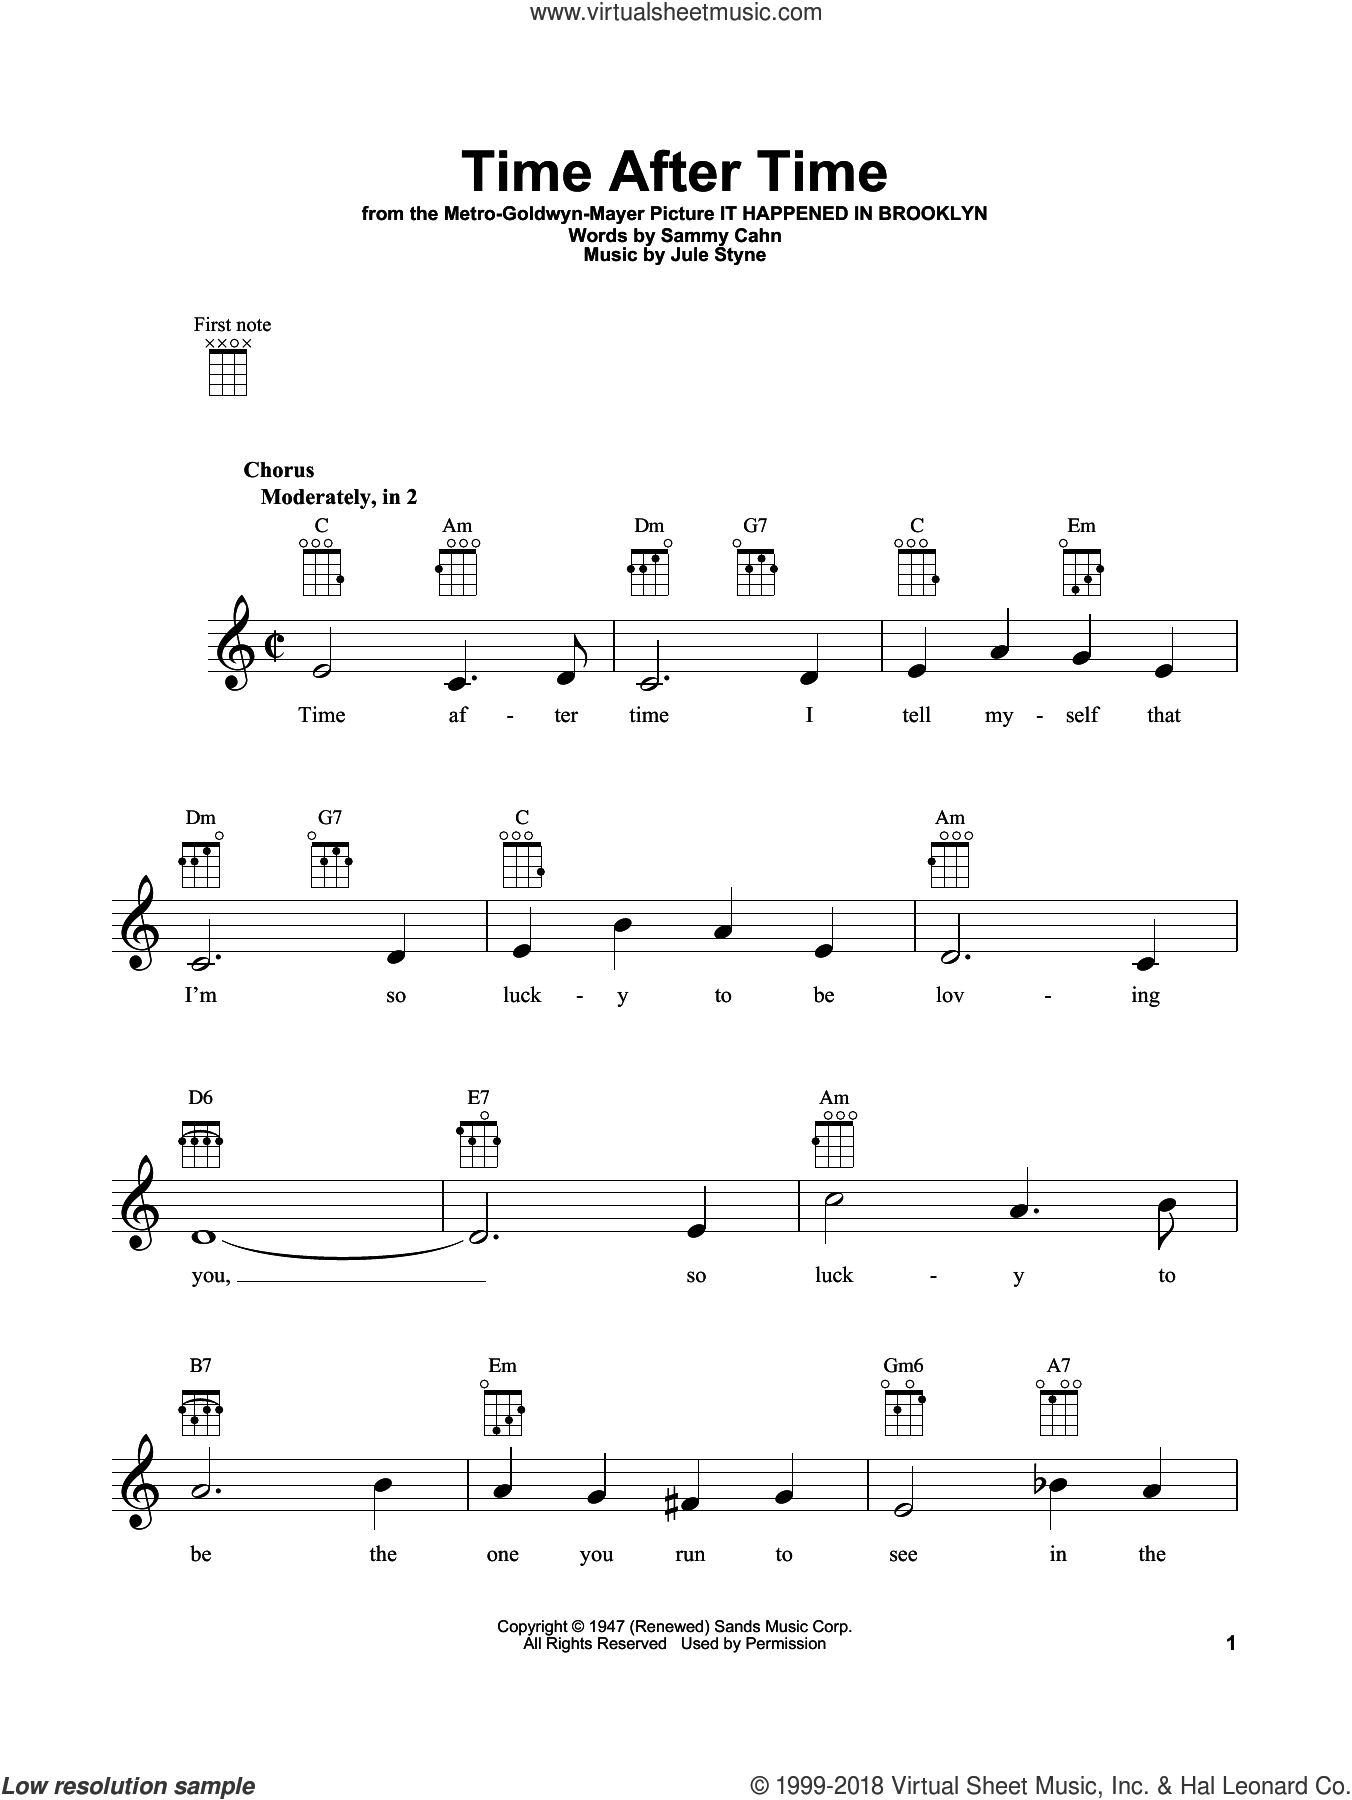 Time After Time sheet music for ukulele by Sammy Cahn and Jule Styne, intermediate skill level